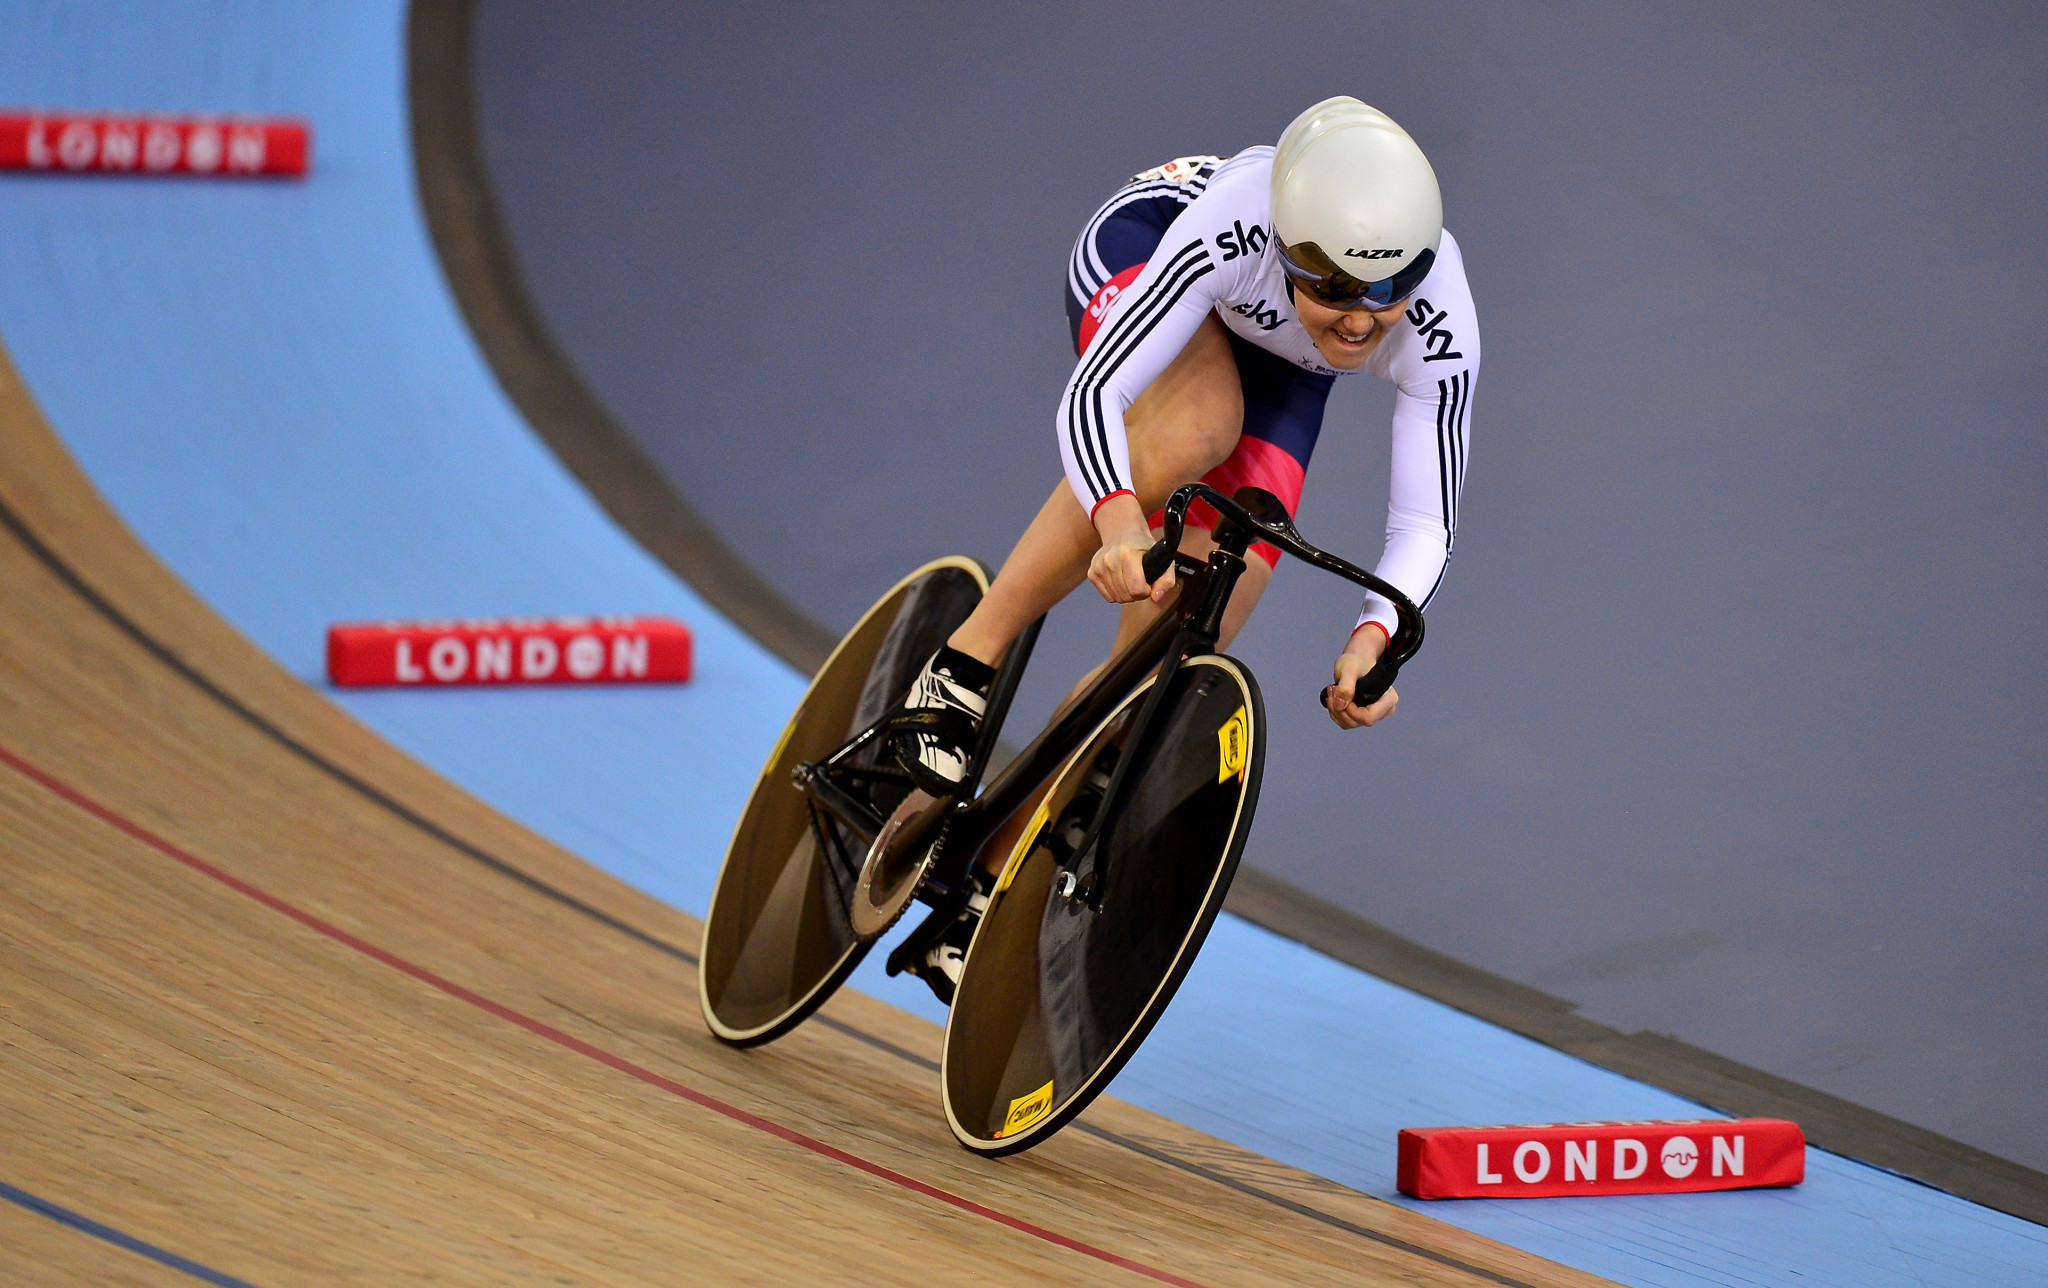 Jess Varnish is a former European team sprint champion ©Getty Images